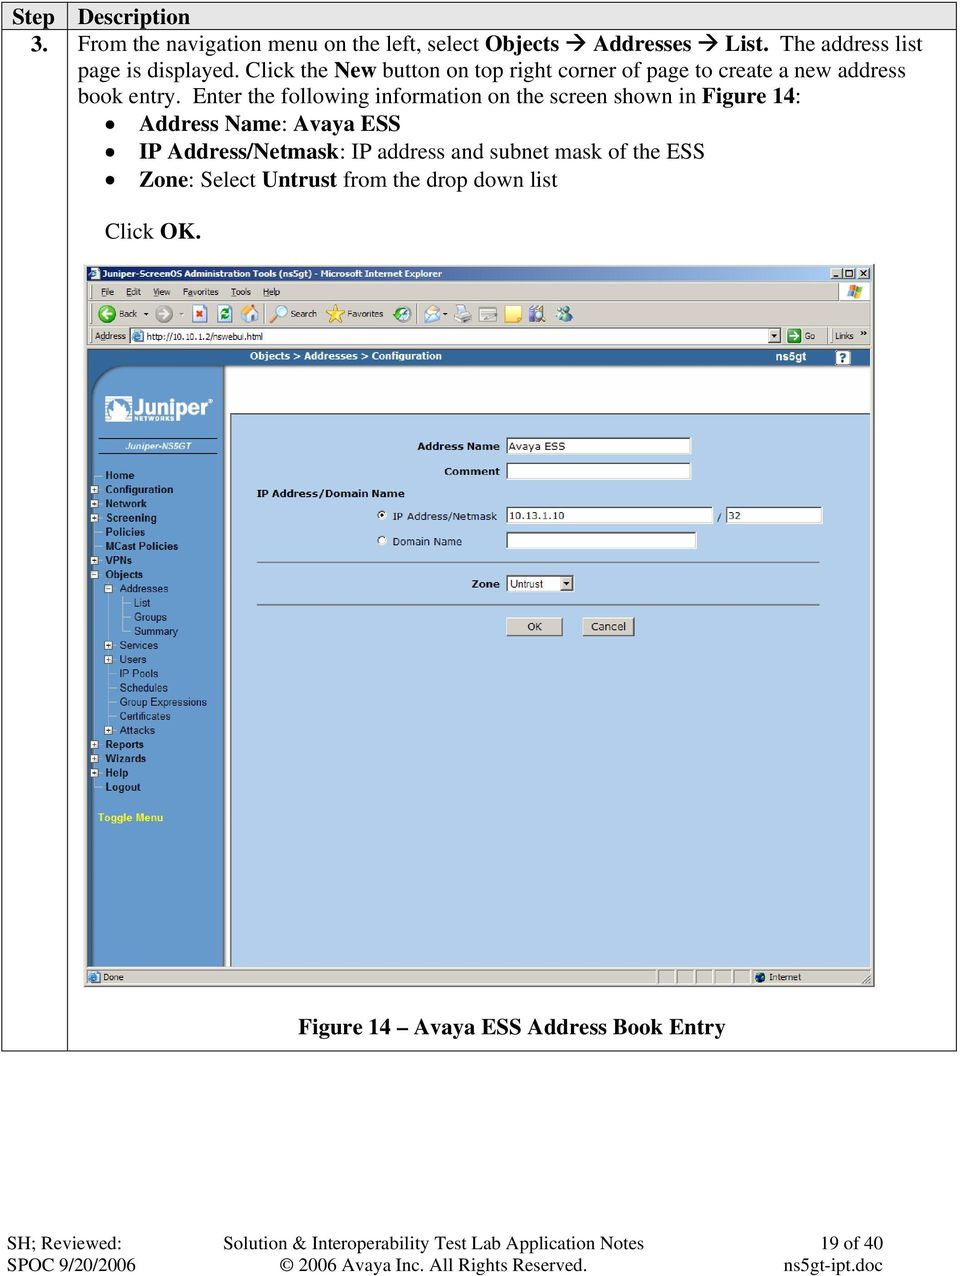 Click the New button on top right corner of page to create a new address book entry.